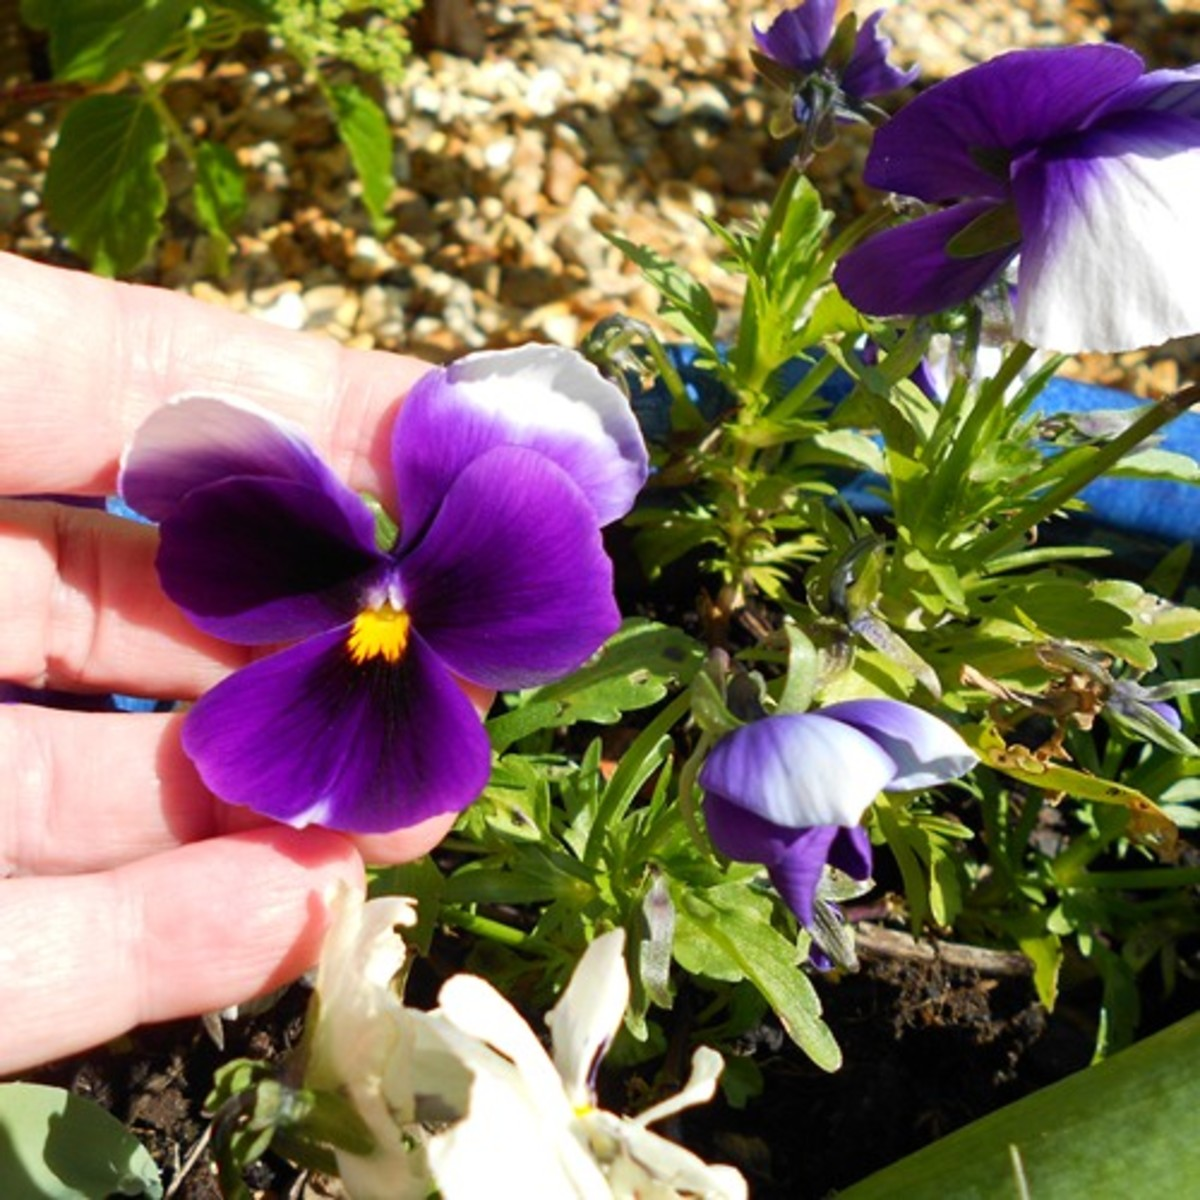 The beautiful pansy flower is well-known for its charm.